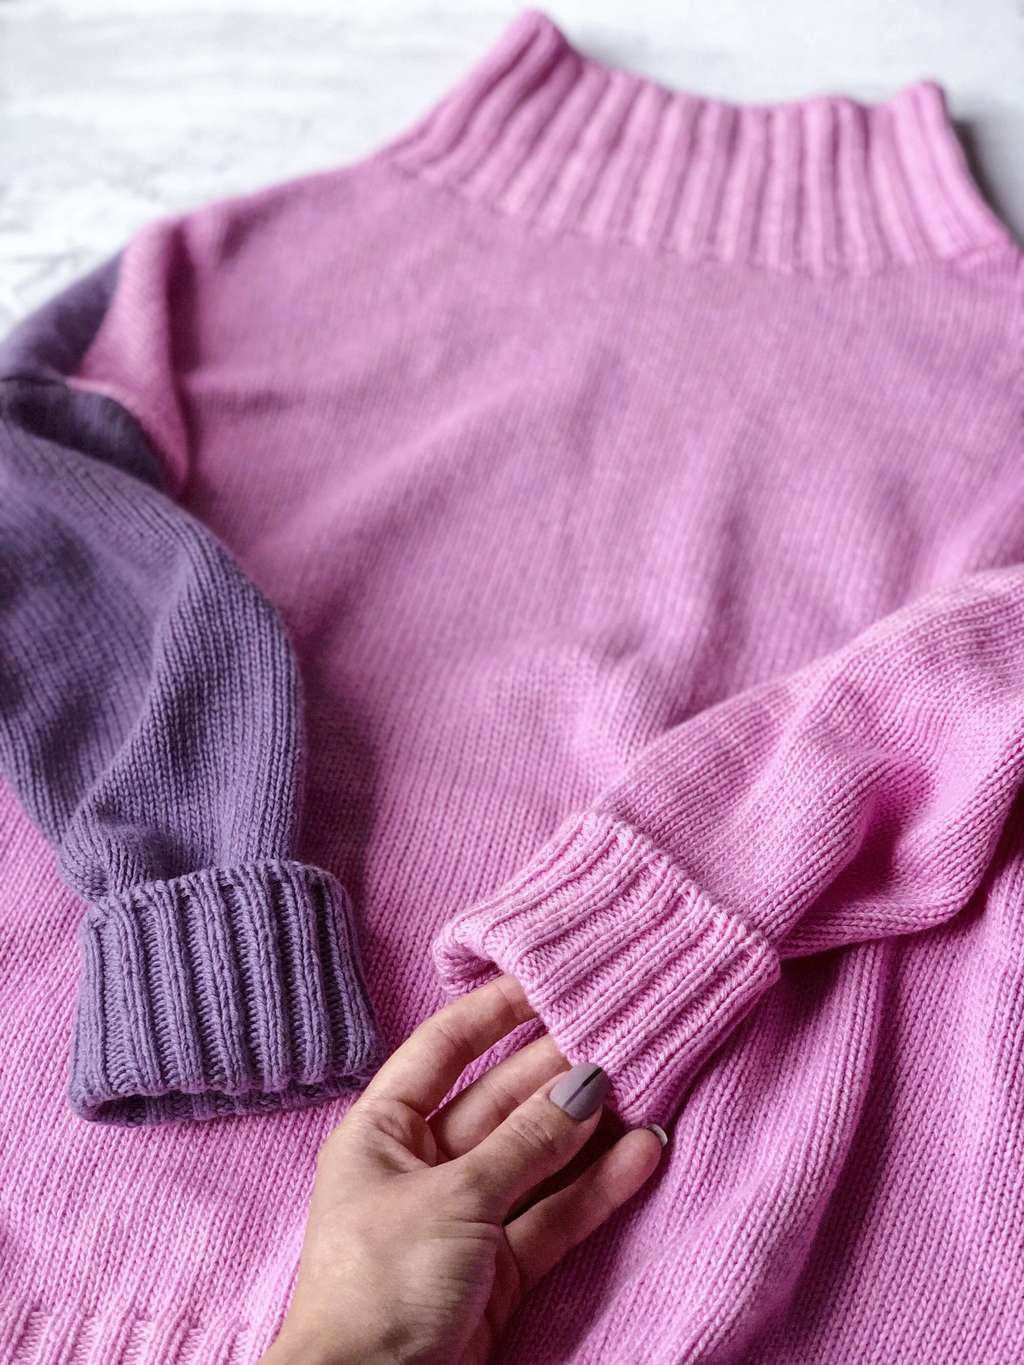 Every day sweater